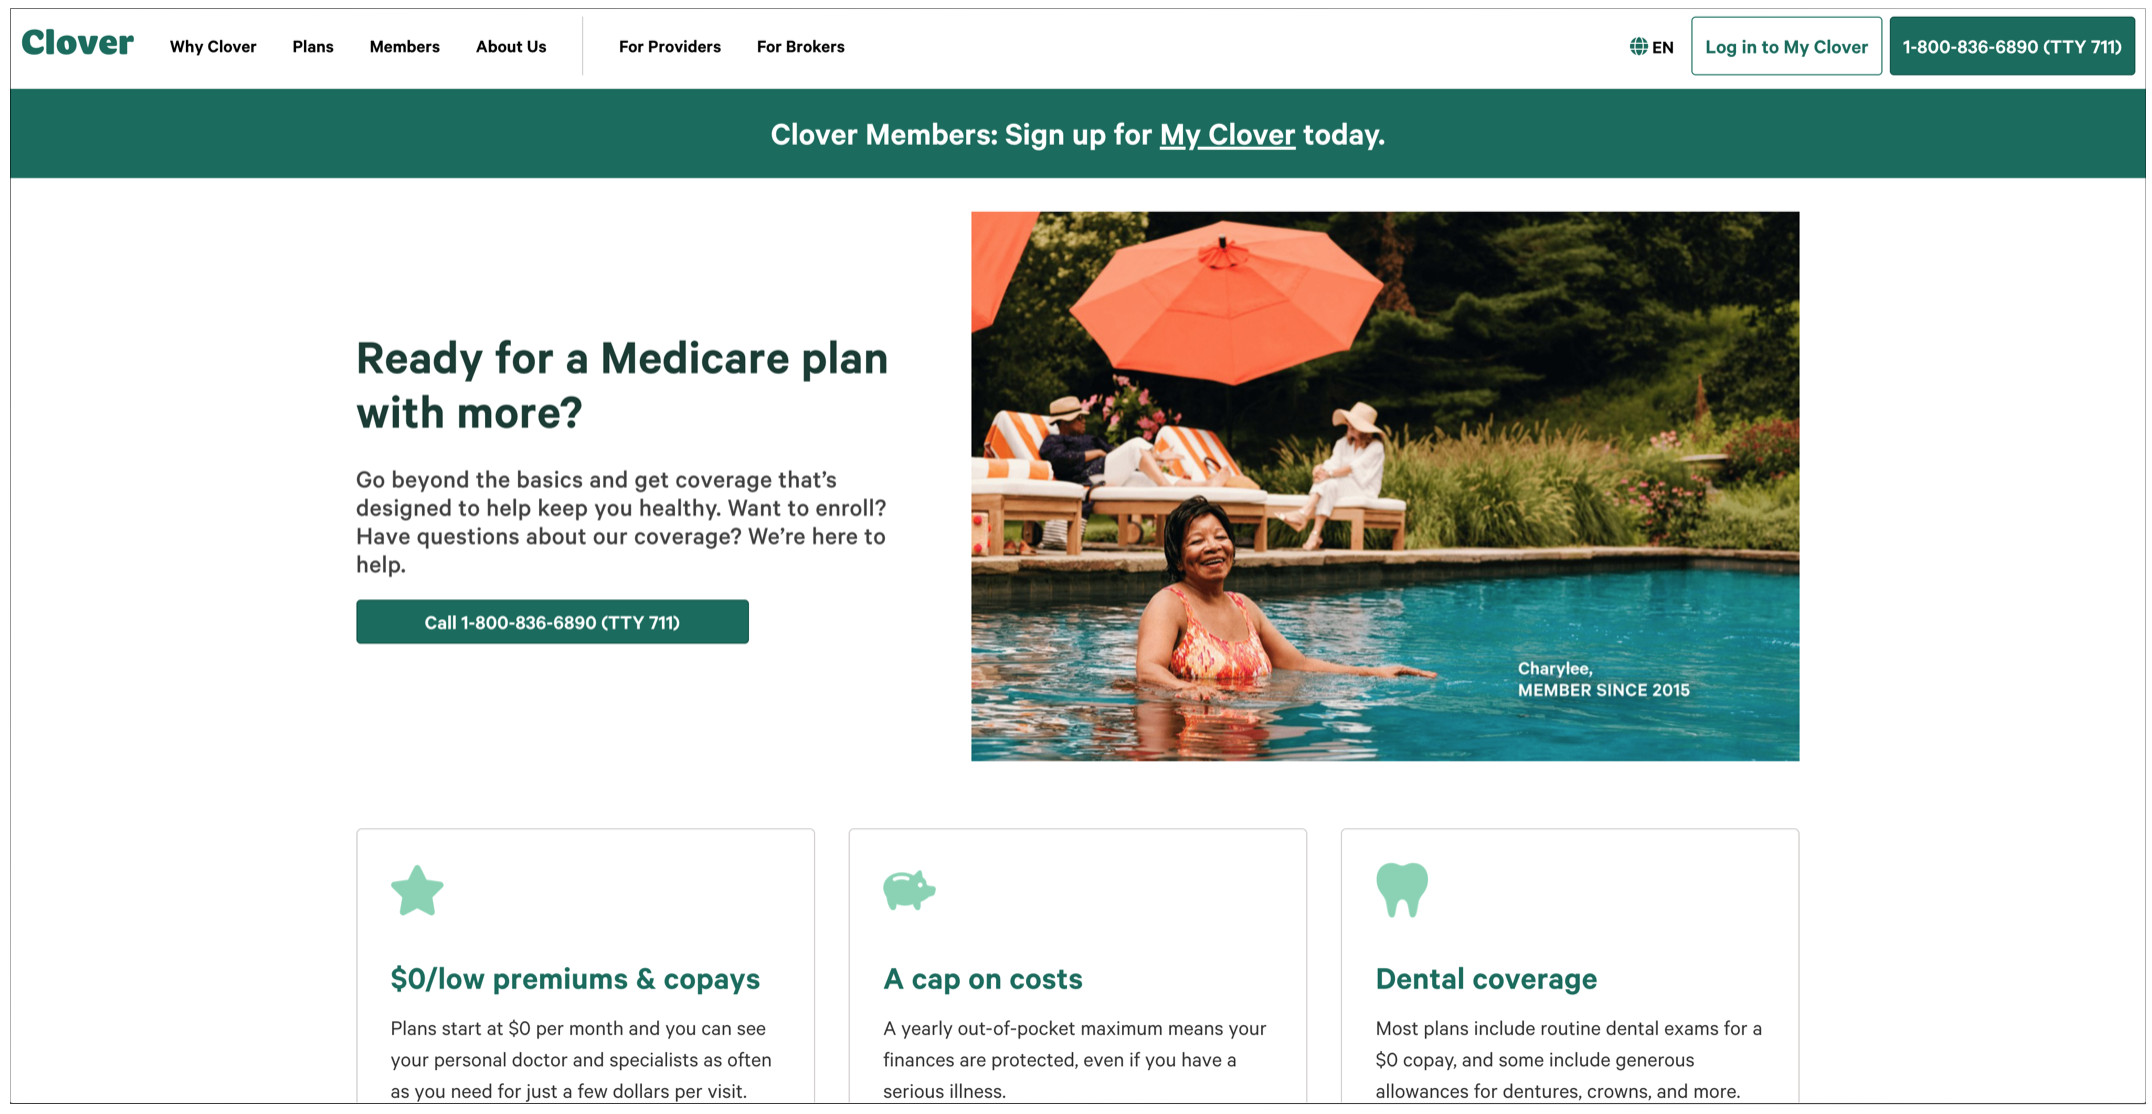 clover-homepage.png